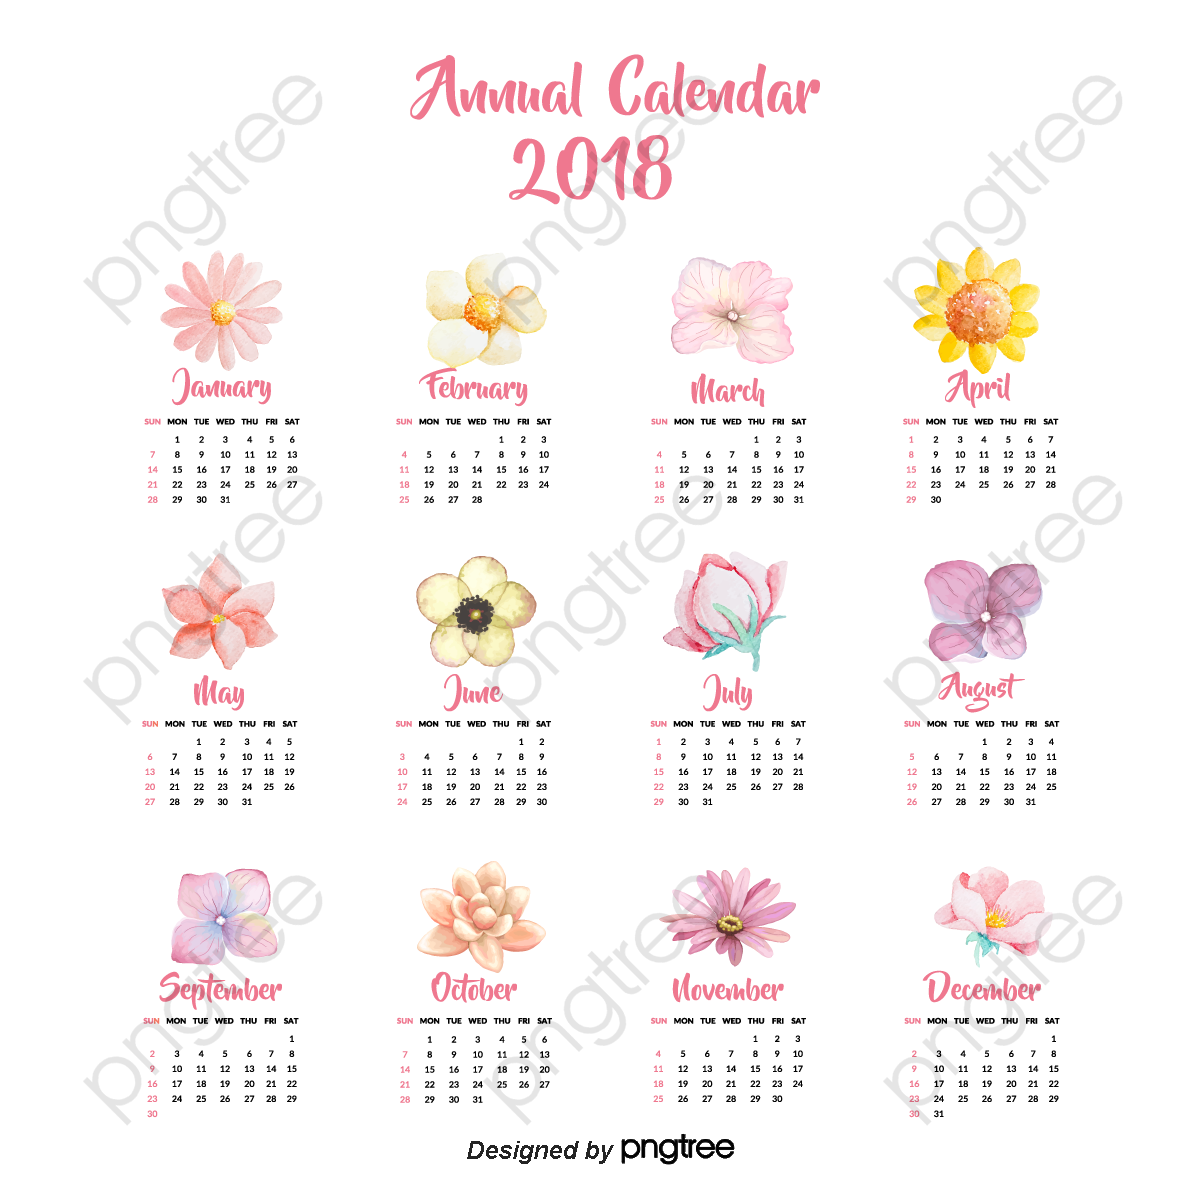 Transparent December 2018 Calendar Template Png Format Image With